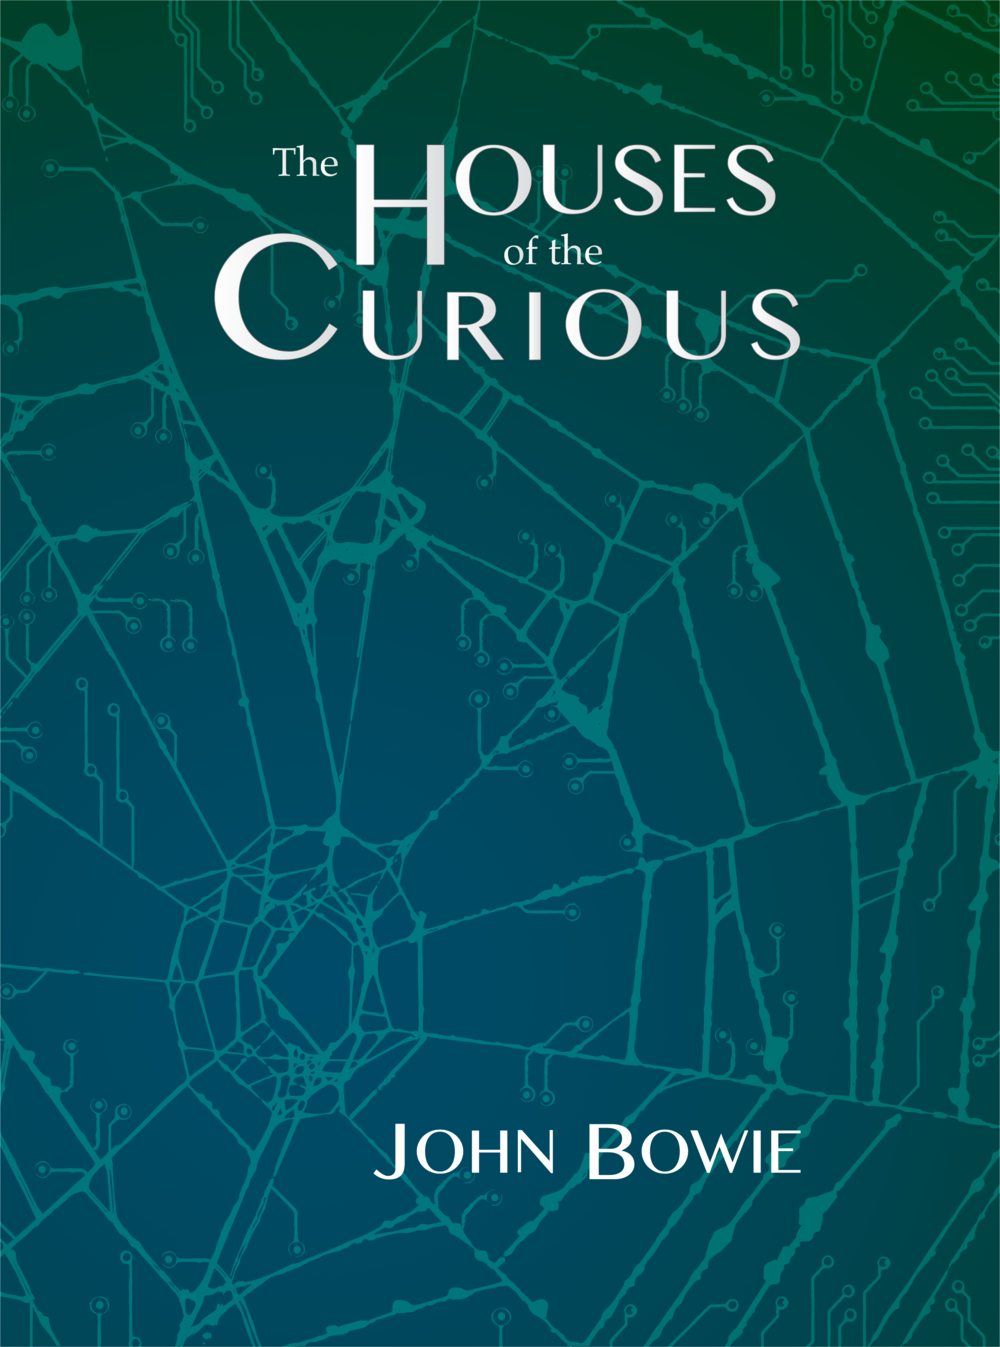 HousesoftheCurious_CoverArtFinalepub150.png